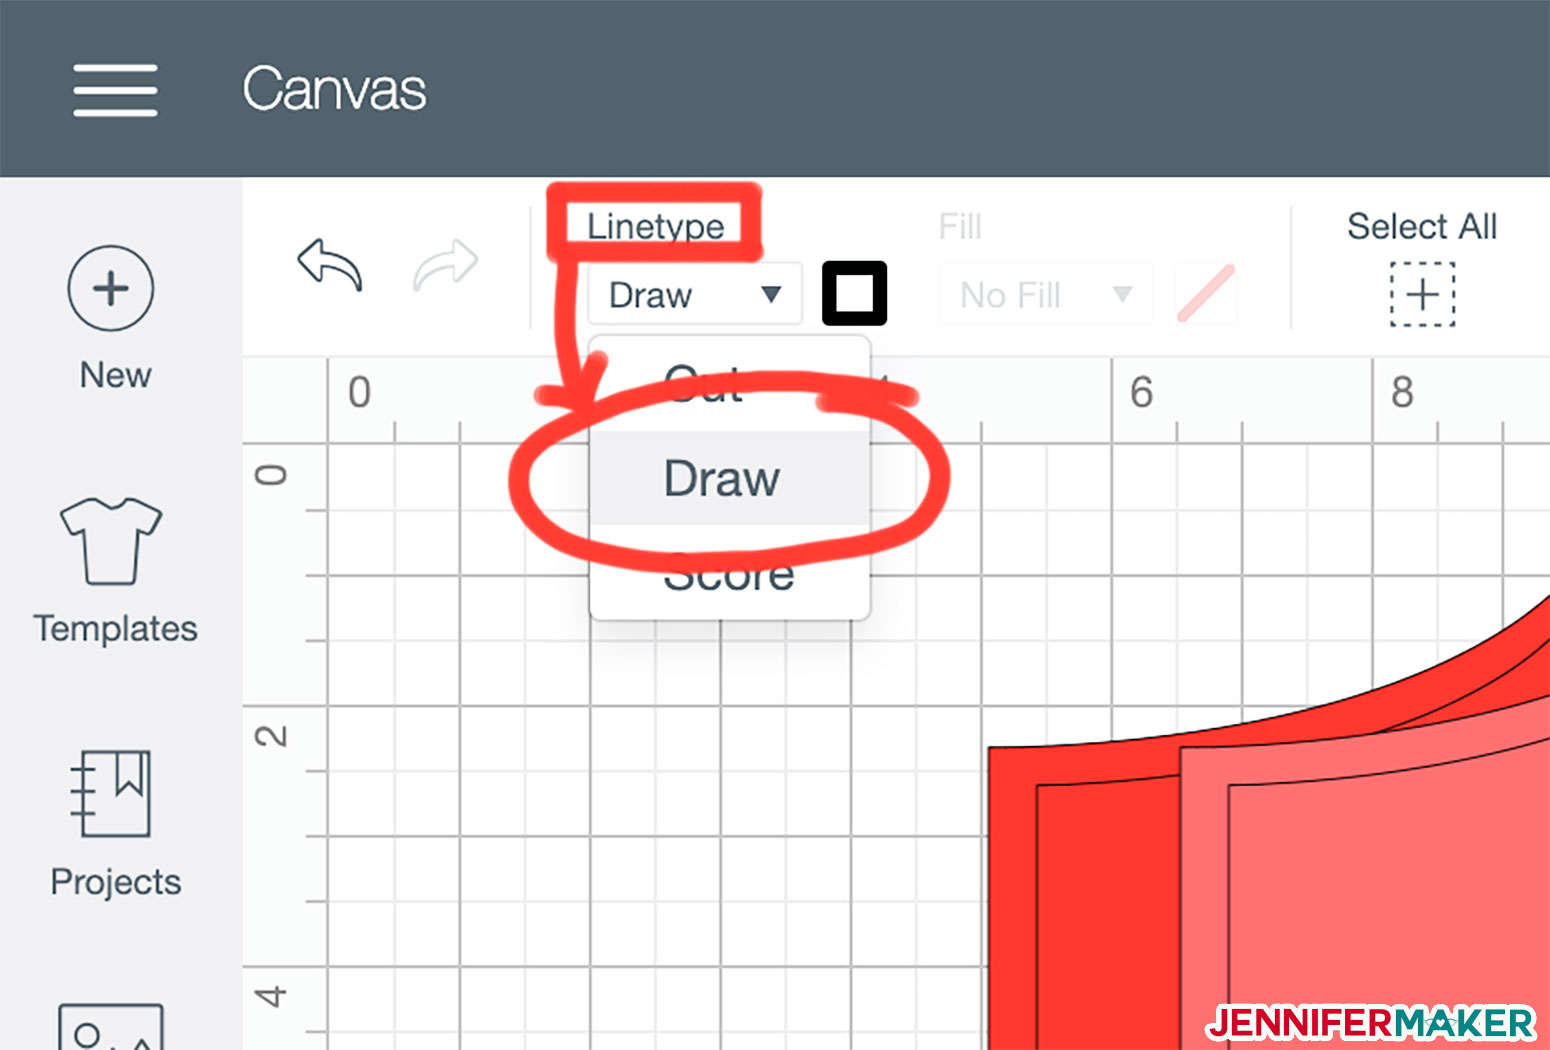 Change your seam allowance lines from cut to draw with the Linetype menu in Cricut Design Space